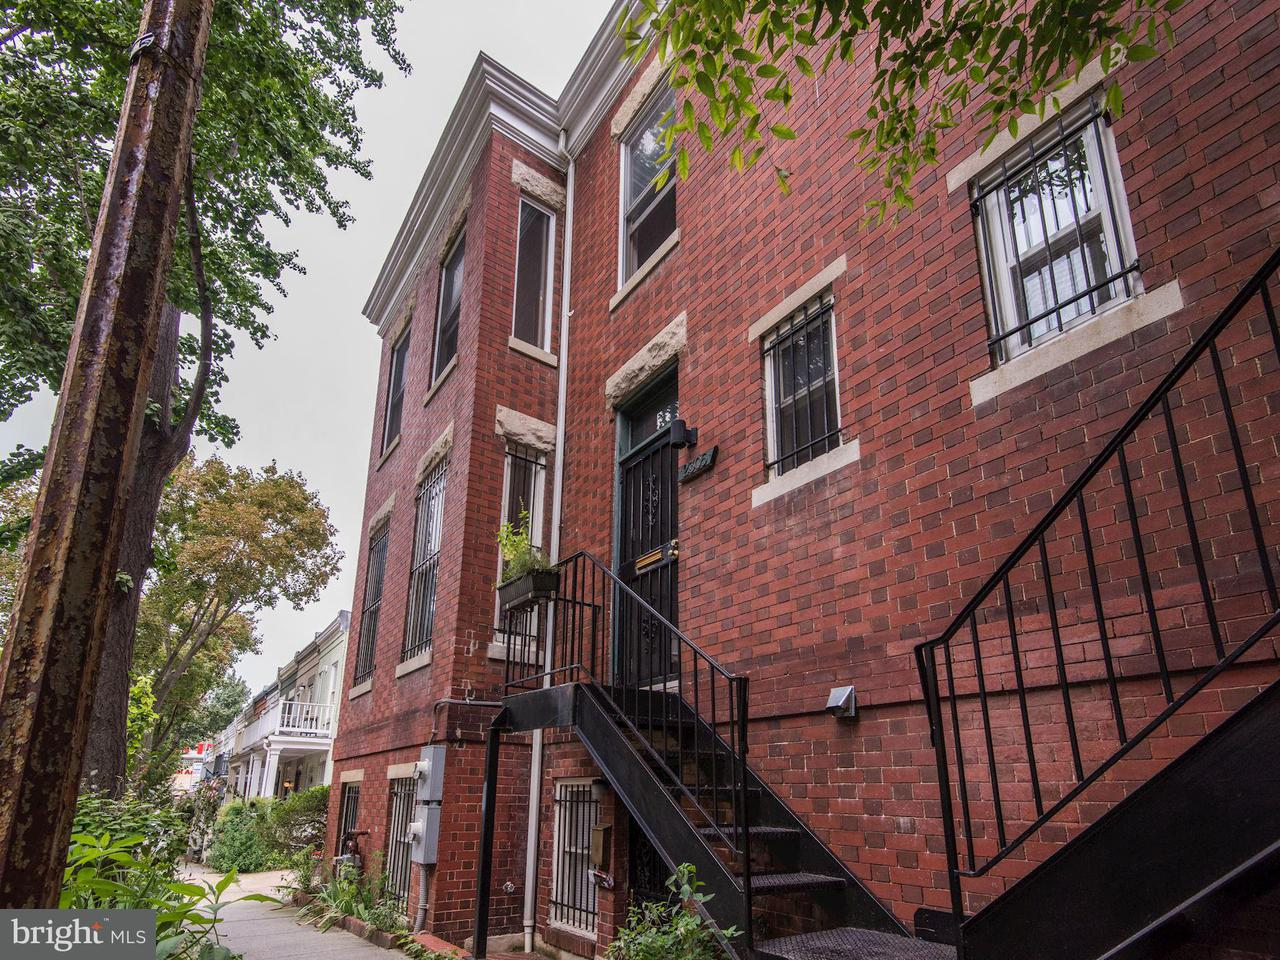 Multi-Family Home for Sale at 2303 17th St Nw 2303 17th St Nw Washington, District Of Columbia 20009 United States